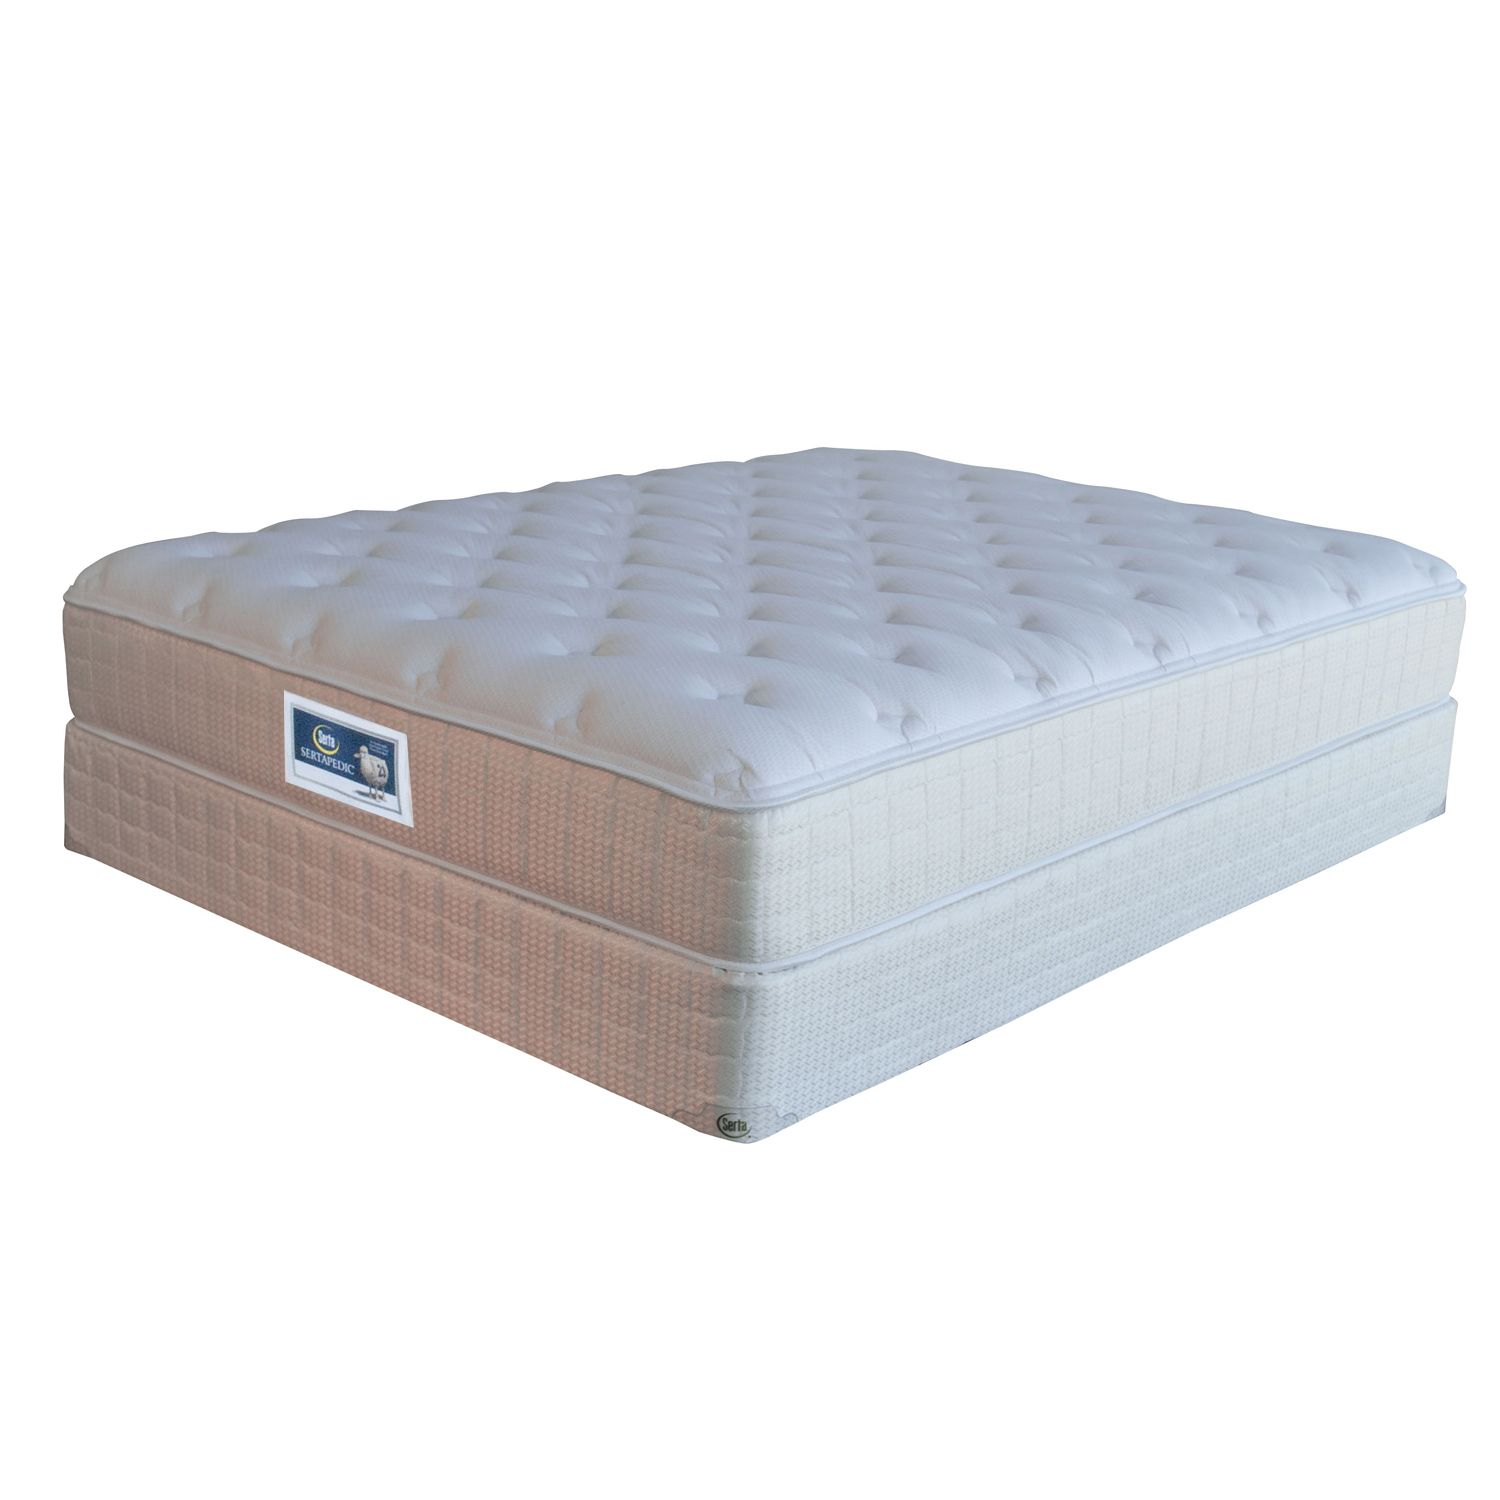 Willow Crest Plush Full Mattress